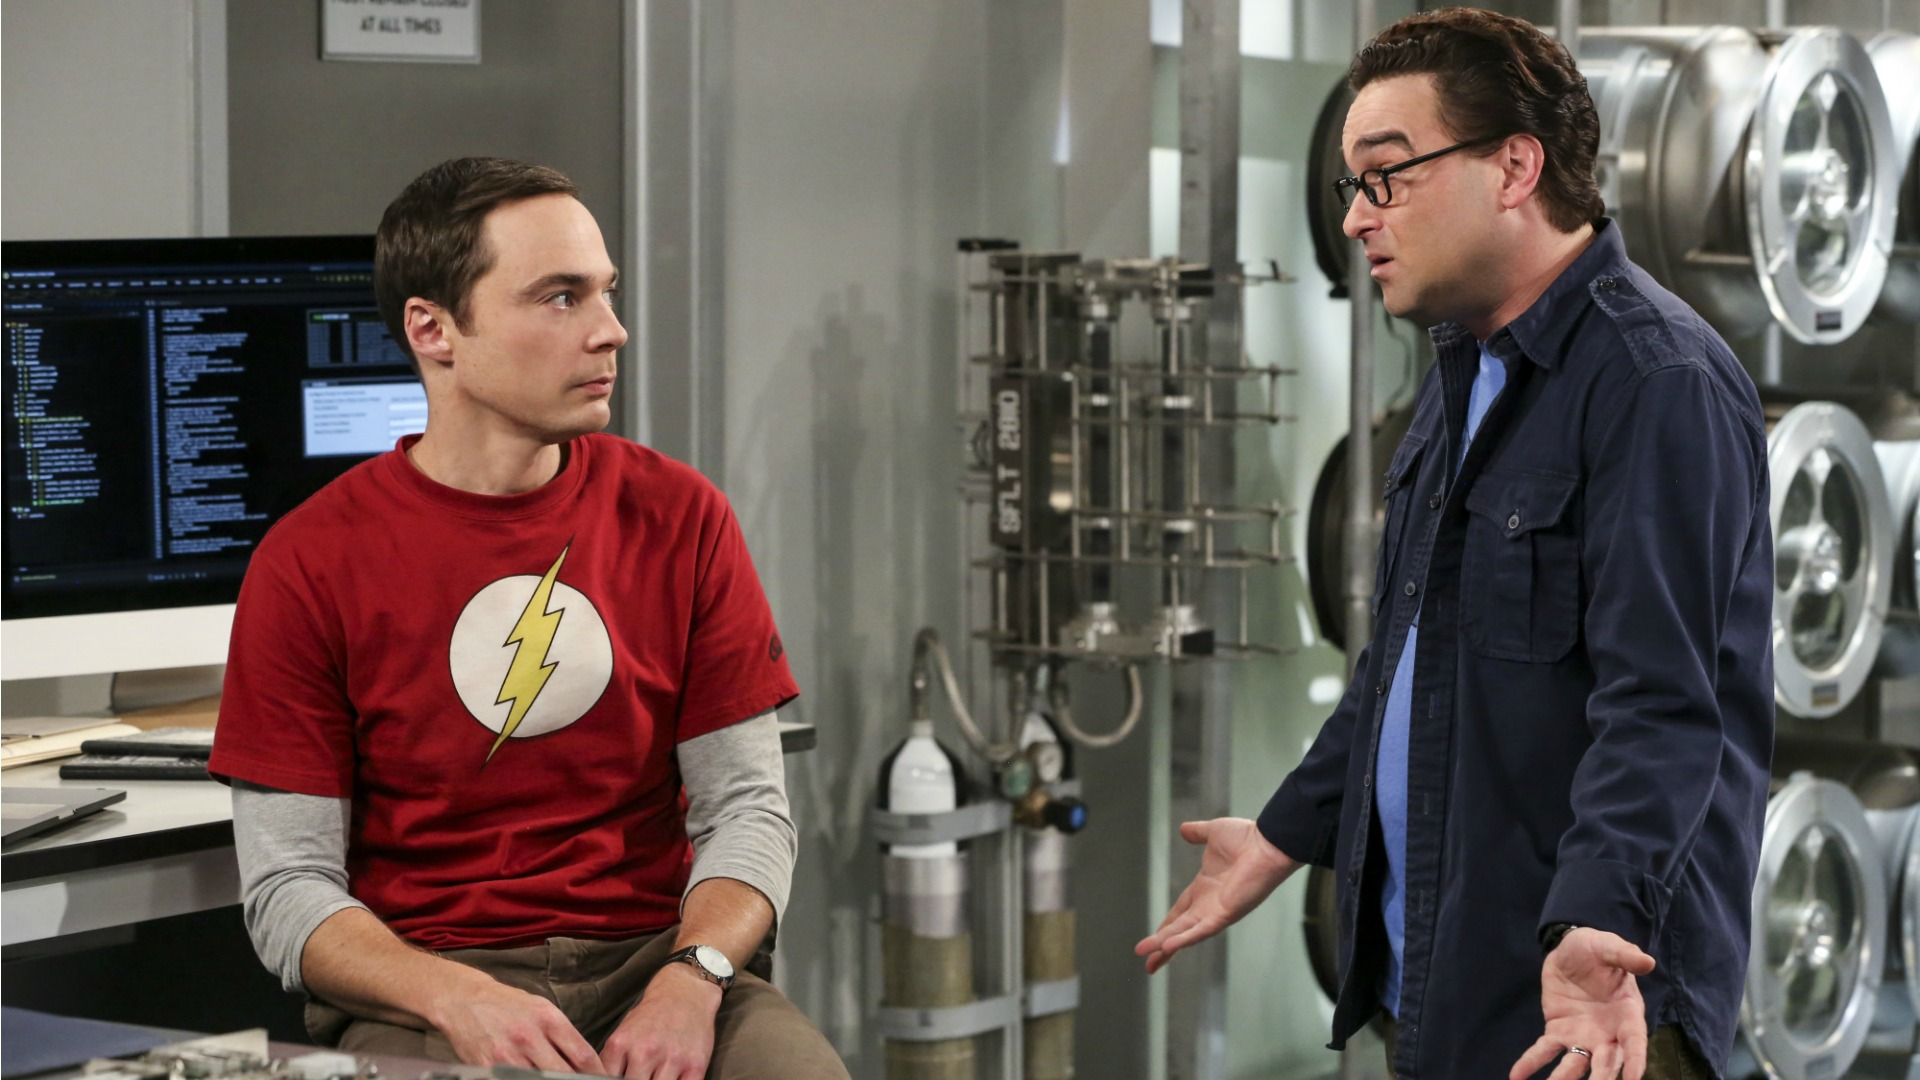 Leonard tries to reason with Sheldon.